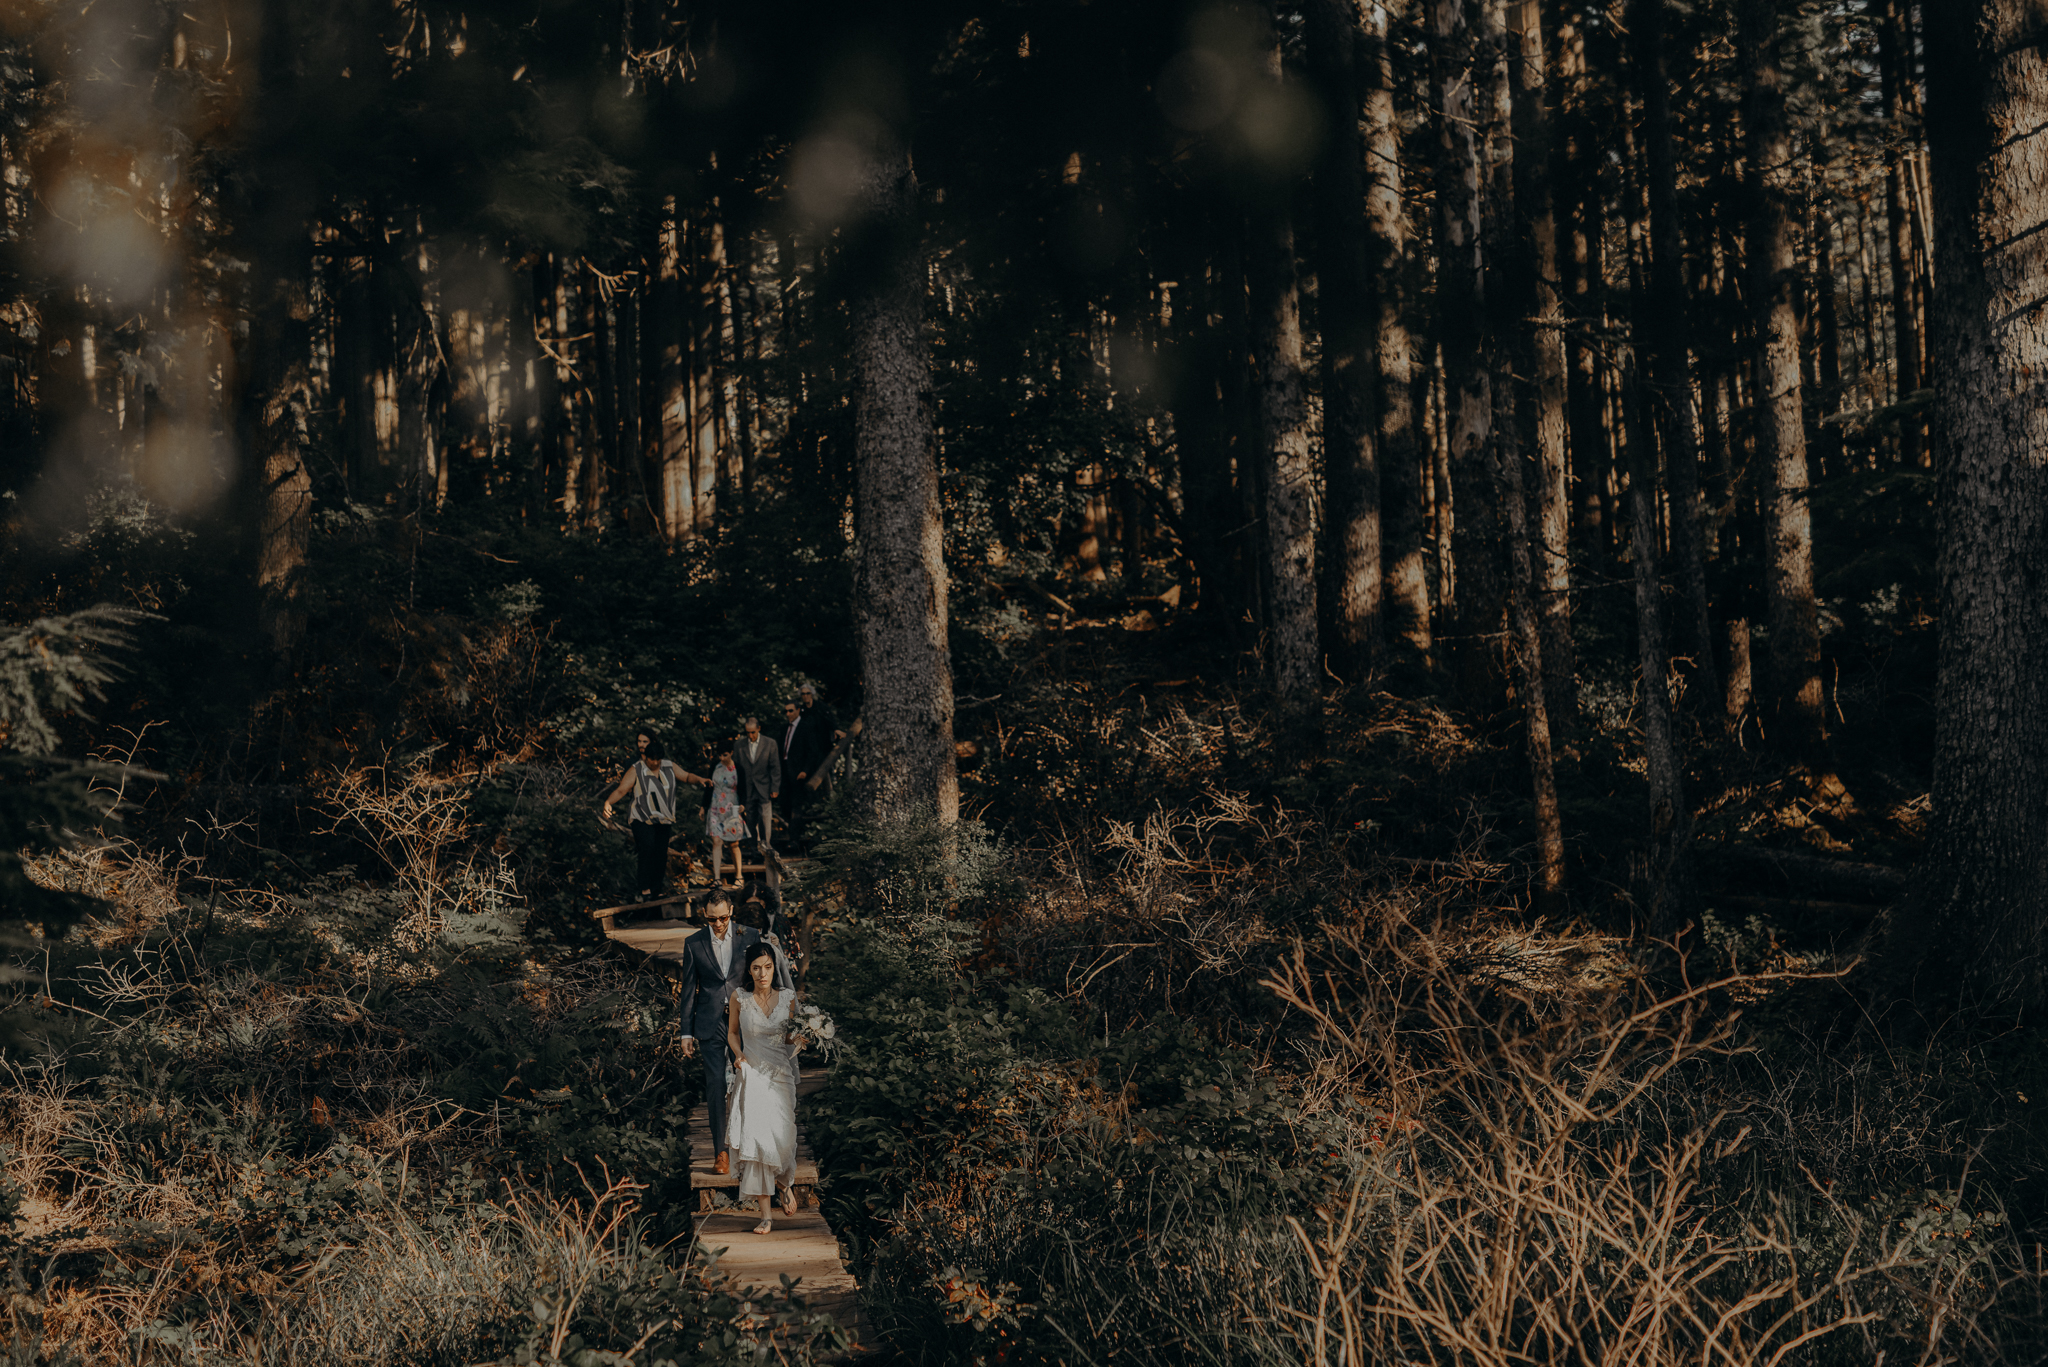 Isaiah + Taylor Photography - Cape Flattery Elopement, Olympia National Forest Wedding Photographer-036.jpg